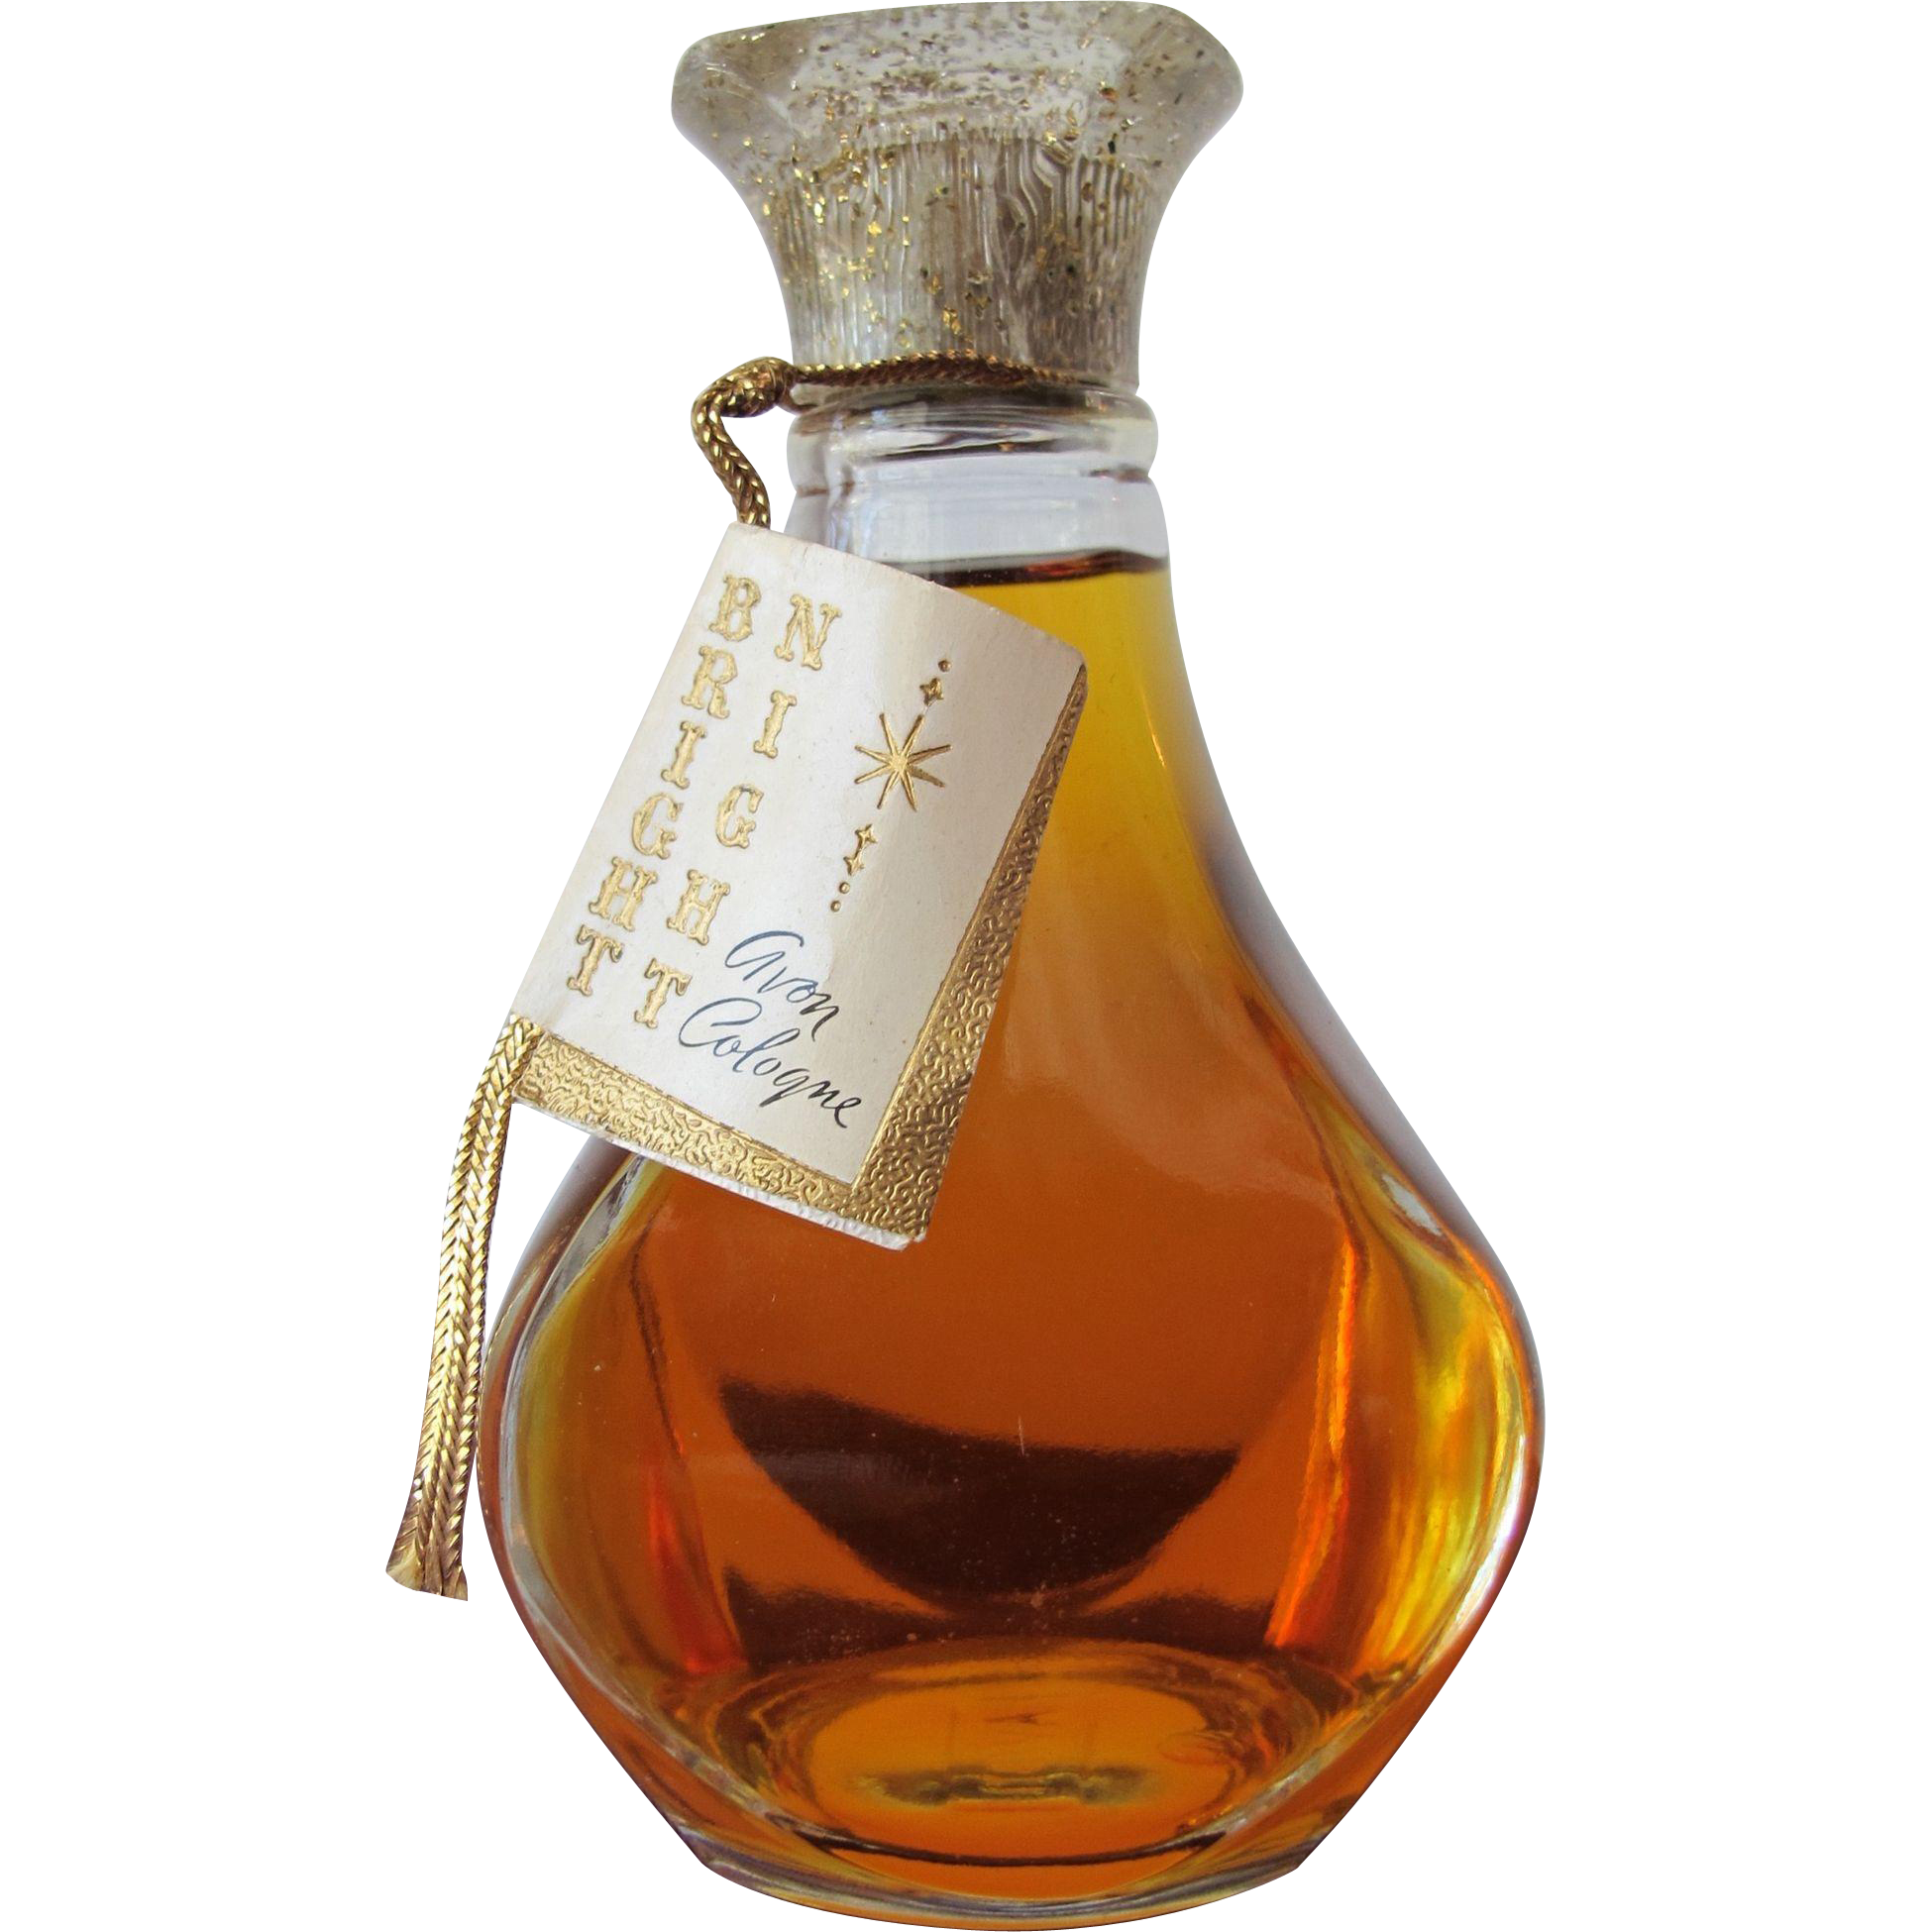 Full Perfume Bottle by Avon from 1950's With Hanging Tag